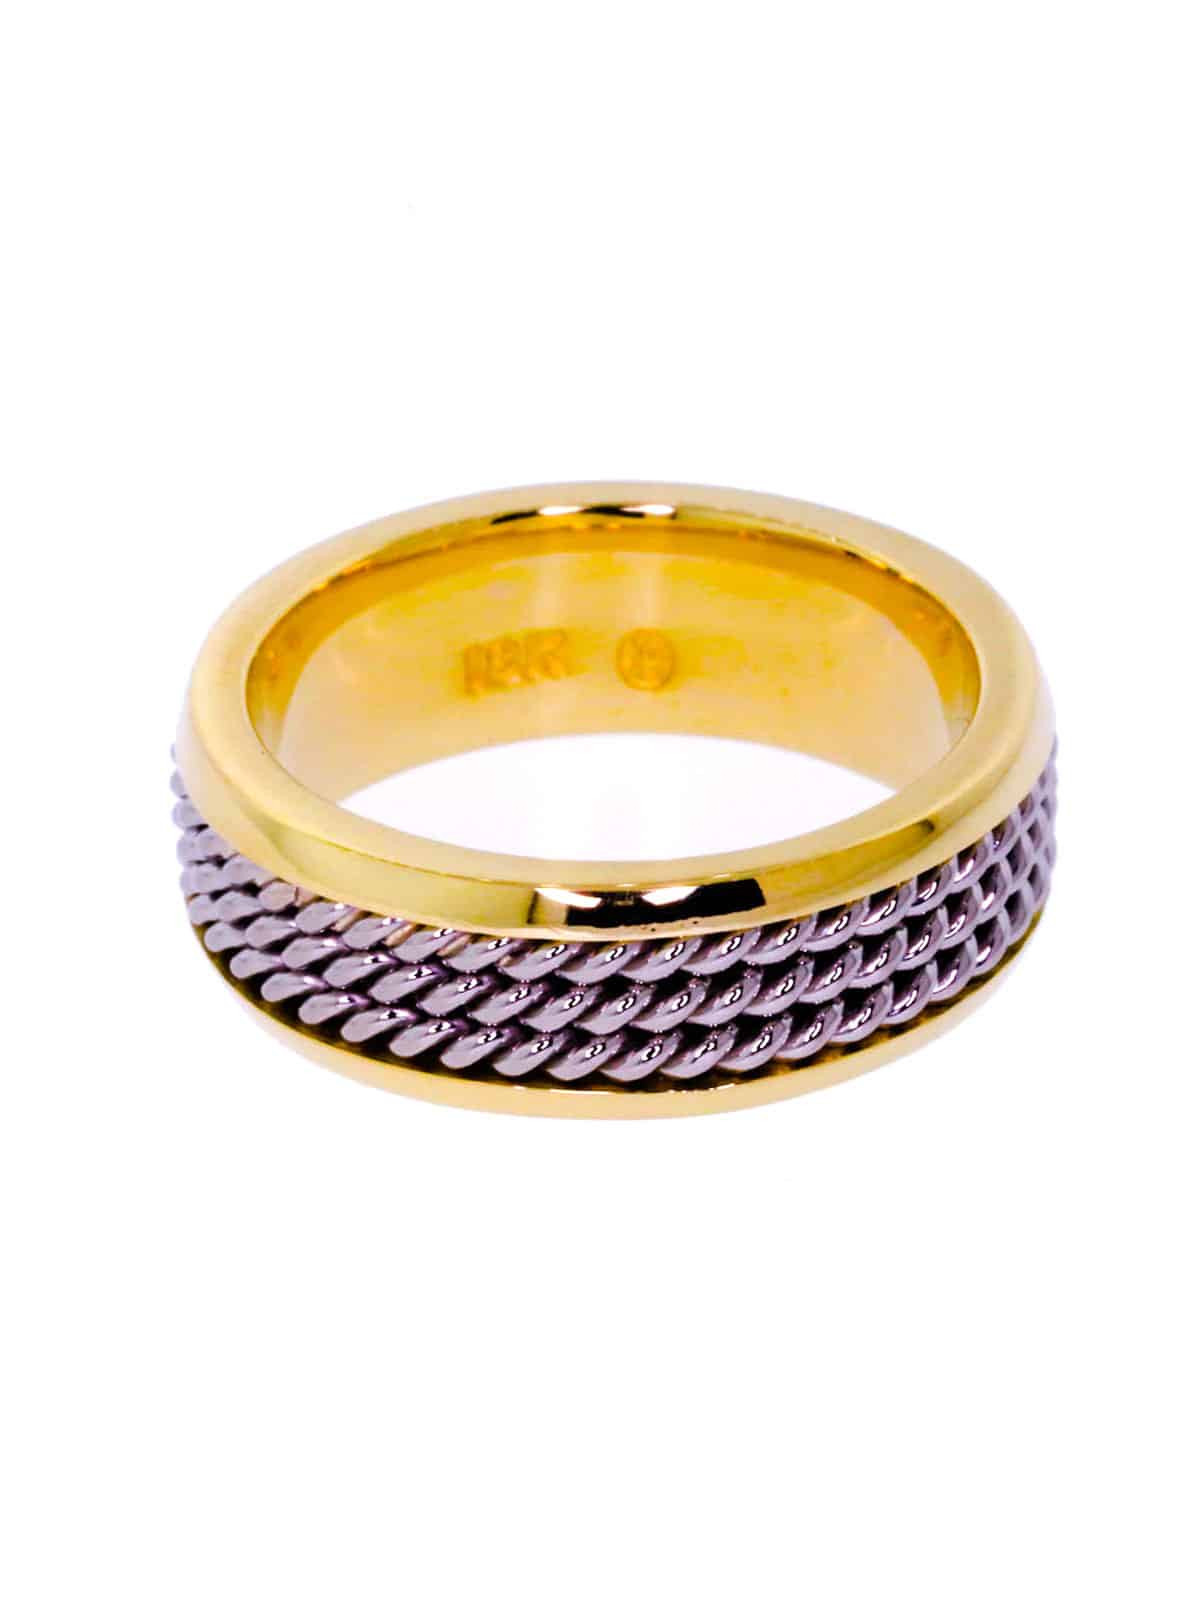 Nautical Wedding Bands  Gold Rope Wedding Band for Men